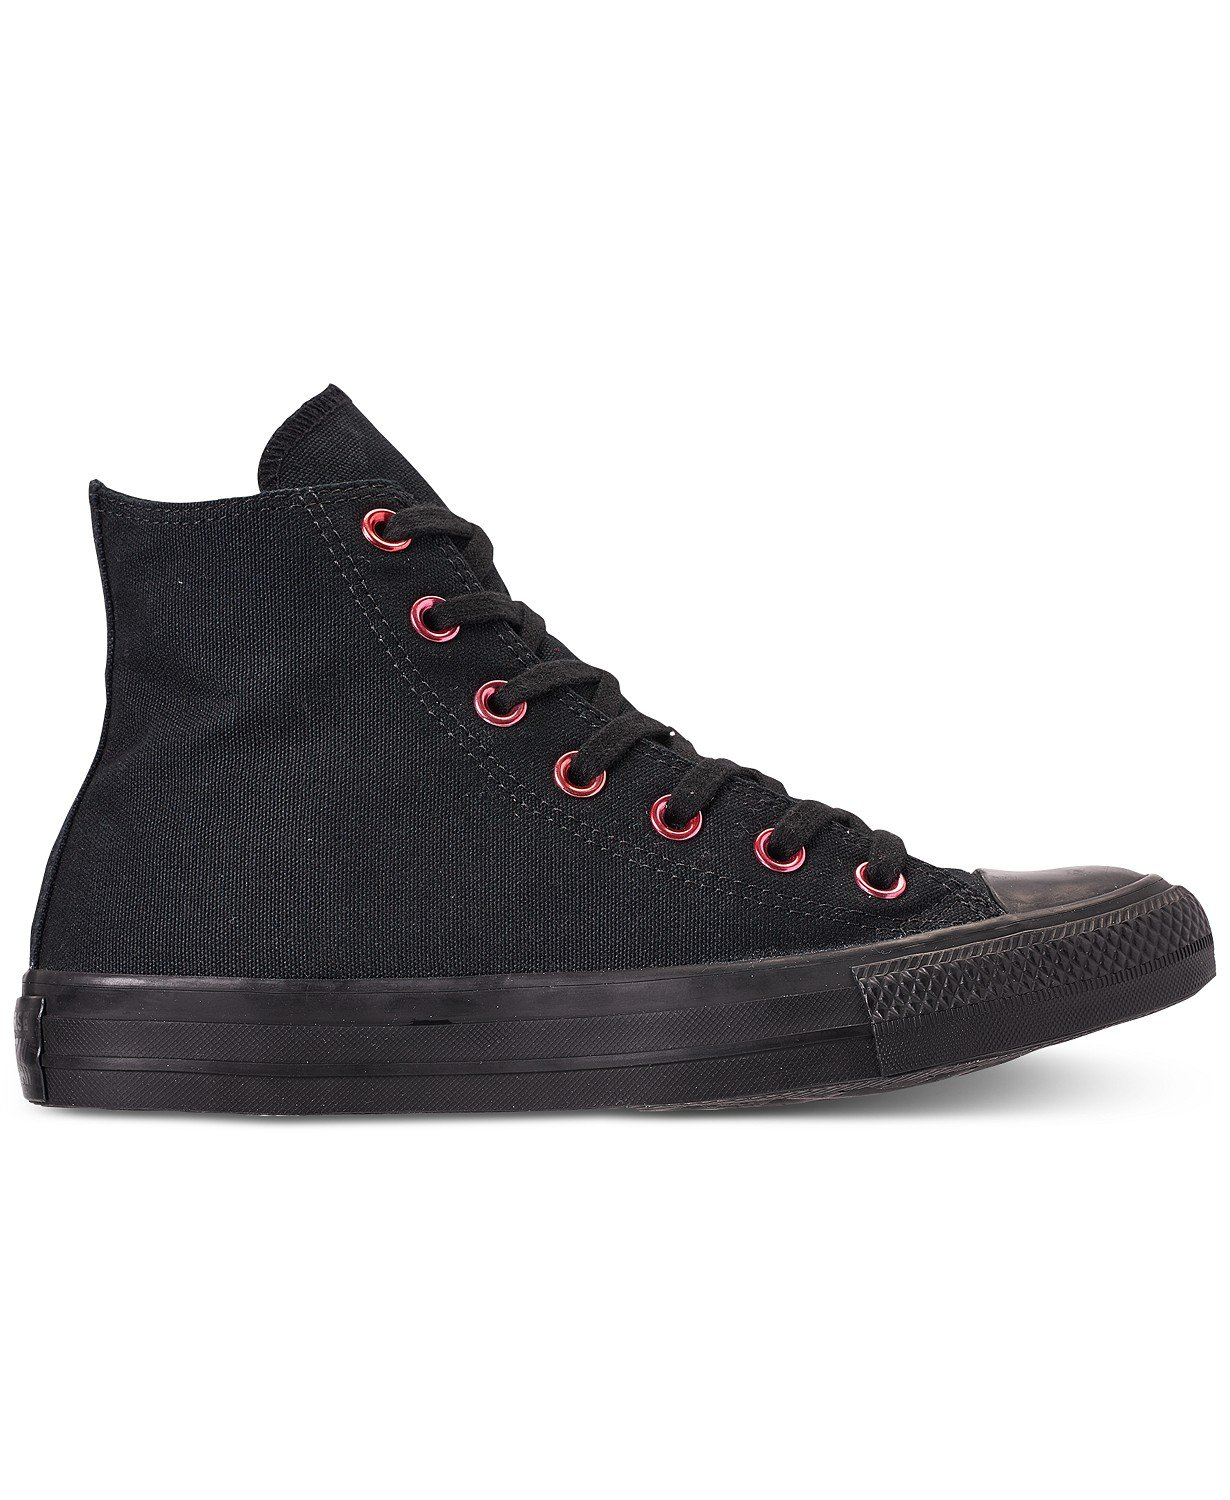 Converse Chuck Taylor High Tops Casual Sneakers